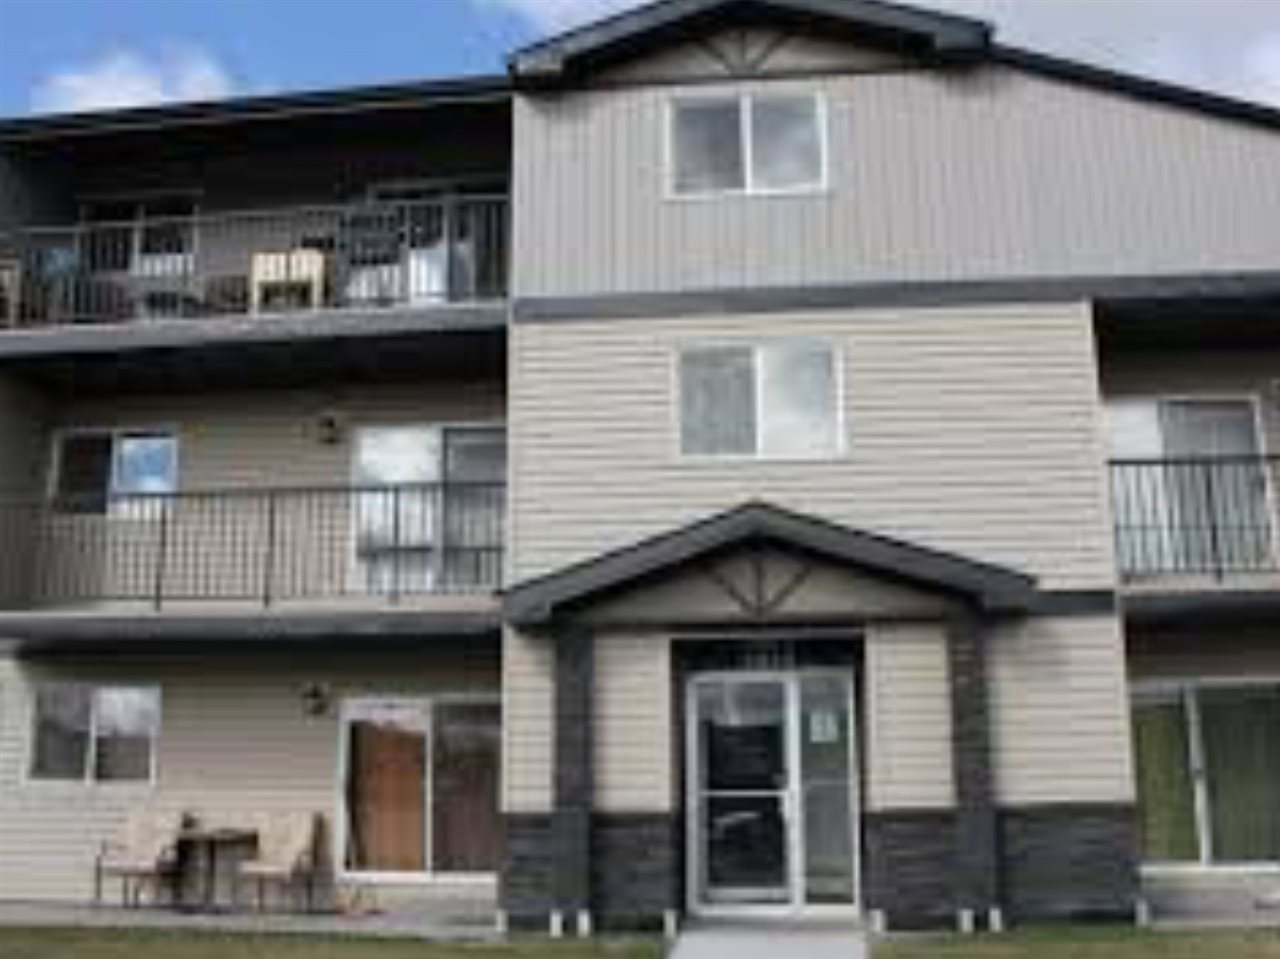 AFFORDABILITY PLUS! The fees are SUPER LOW when you factor in HEAT and WATER INCLUDED! This Complex is located in Blue Quill, a desirable and safe part of town that is walkable with shopping, LRT, walking trails, and more.